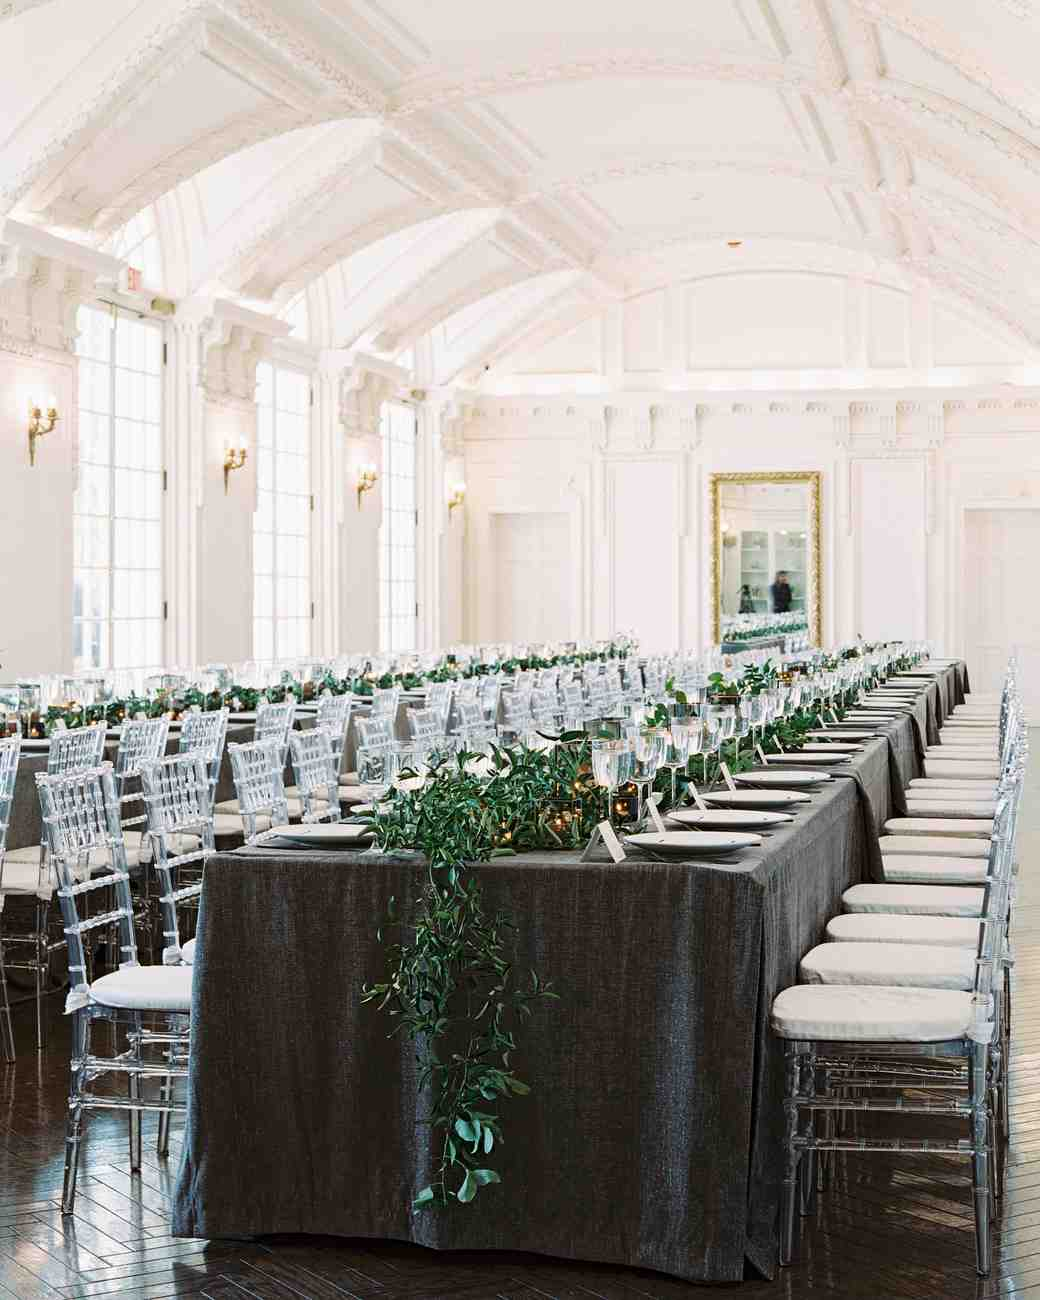 this black tie wedding pulled off banquet seating with elegant tablecloths and eucalyptus runners